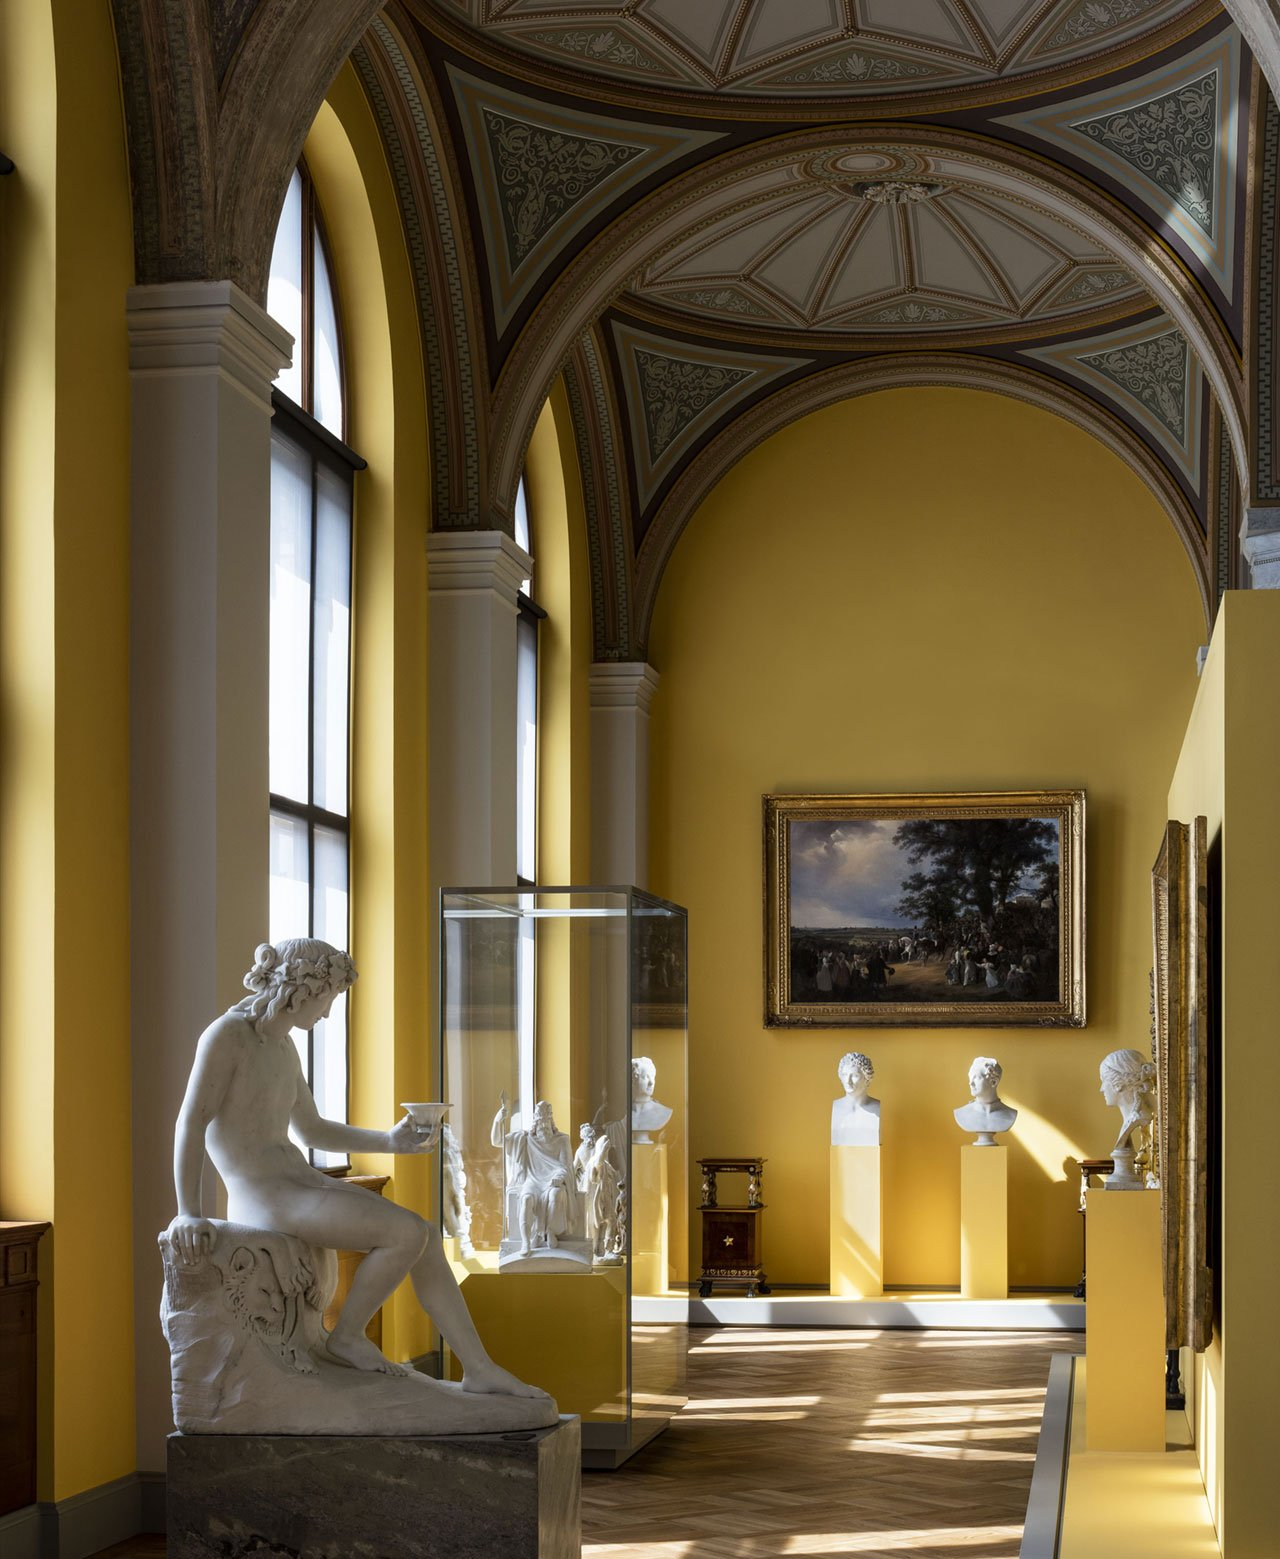 Nationalmuseum interior view.Photo byBrunoEhrs.